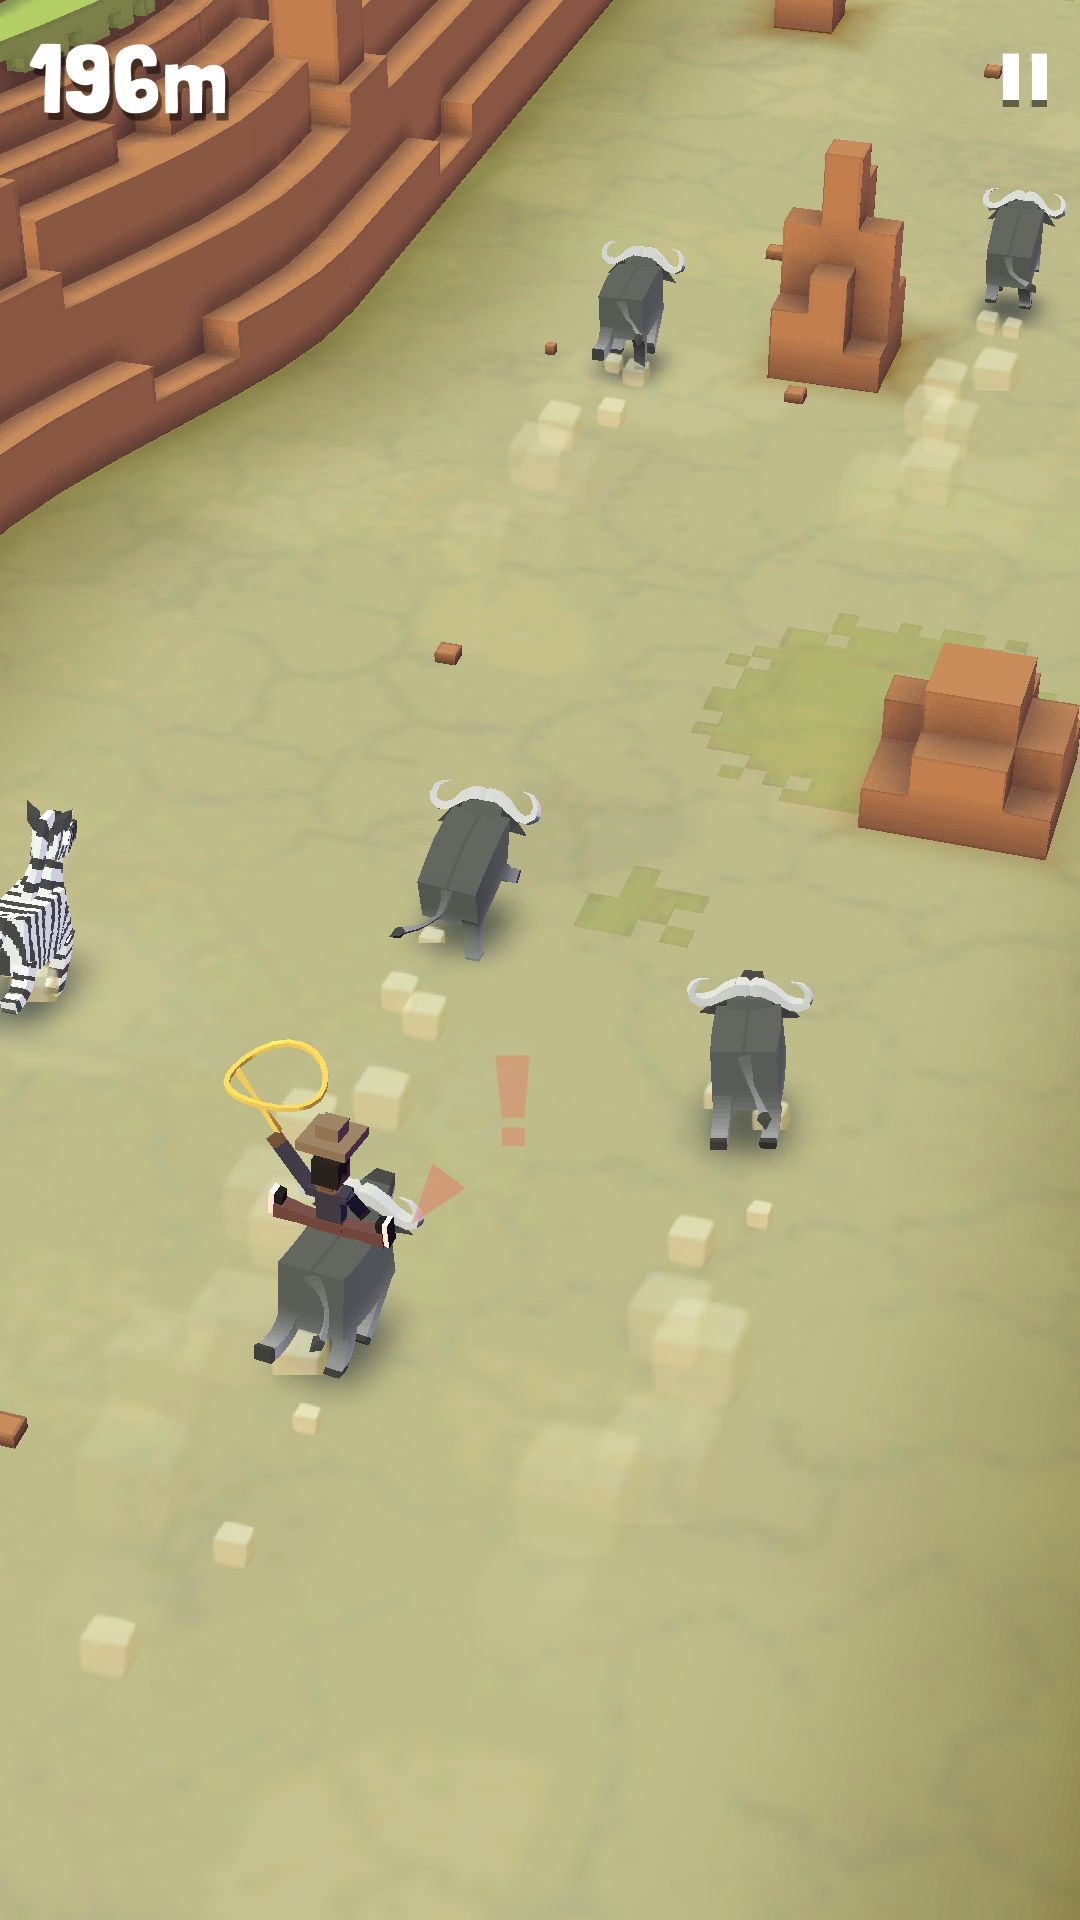 androidアプリ ロデオスタンピード(Rodeo Stampede: Sky Zoo Safari)攻略スクリーンショット3